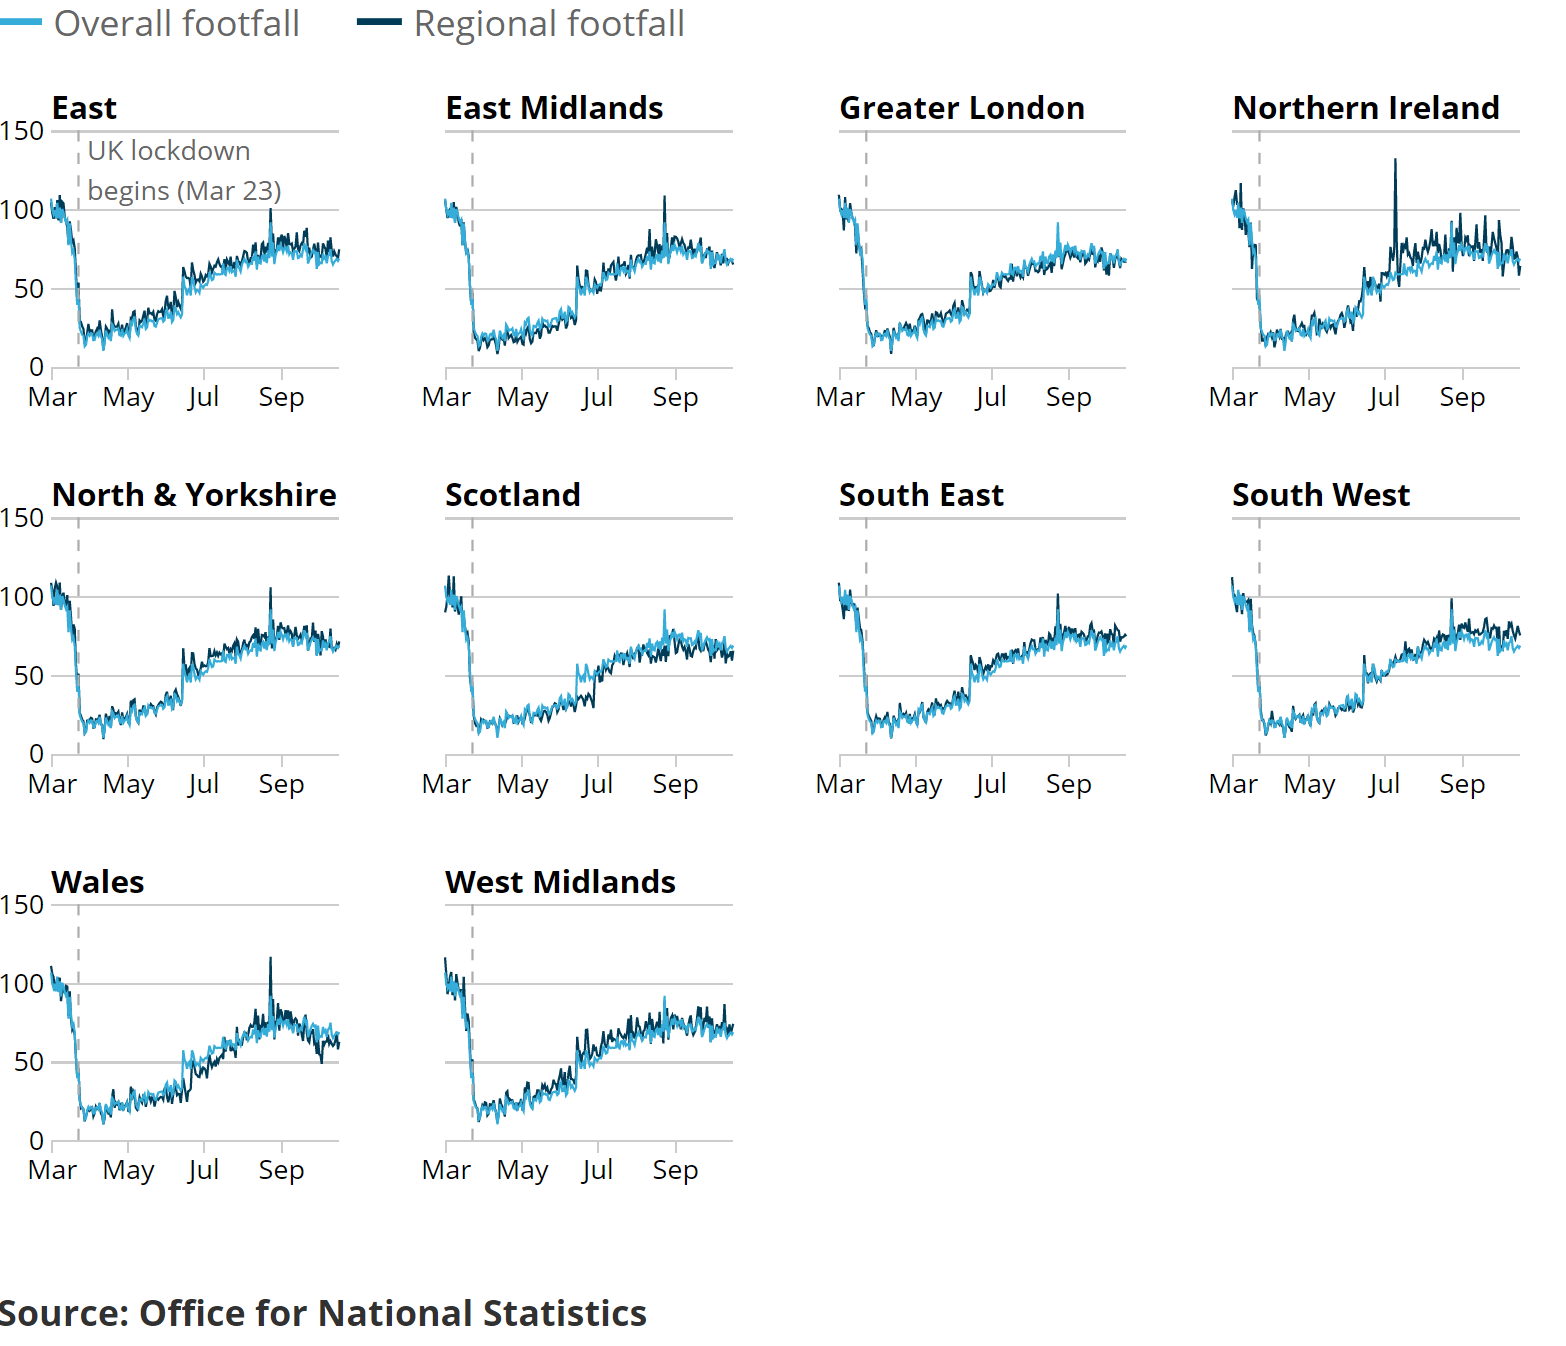 Image showing In the week ending 18 October 2020, footfall decreased in all 10 featured countries and regions, with the largest decrease in the East of England and Northern Ireland.